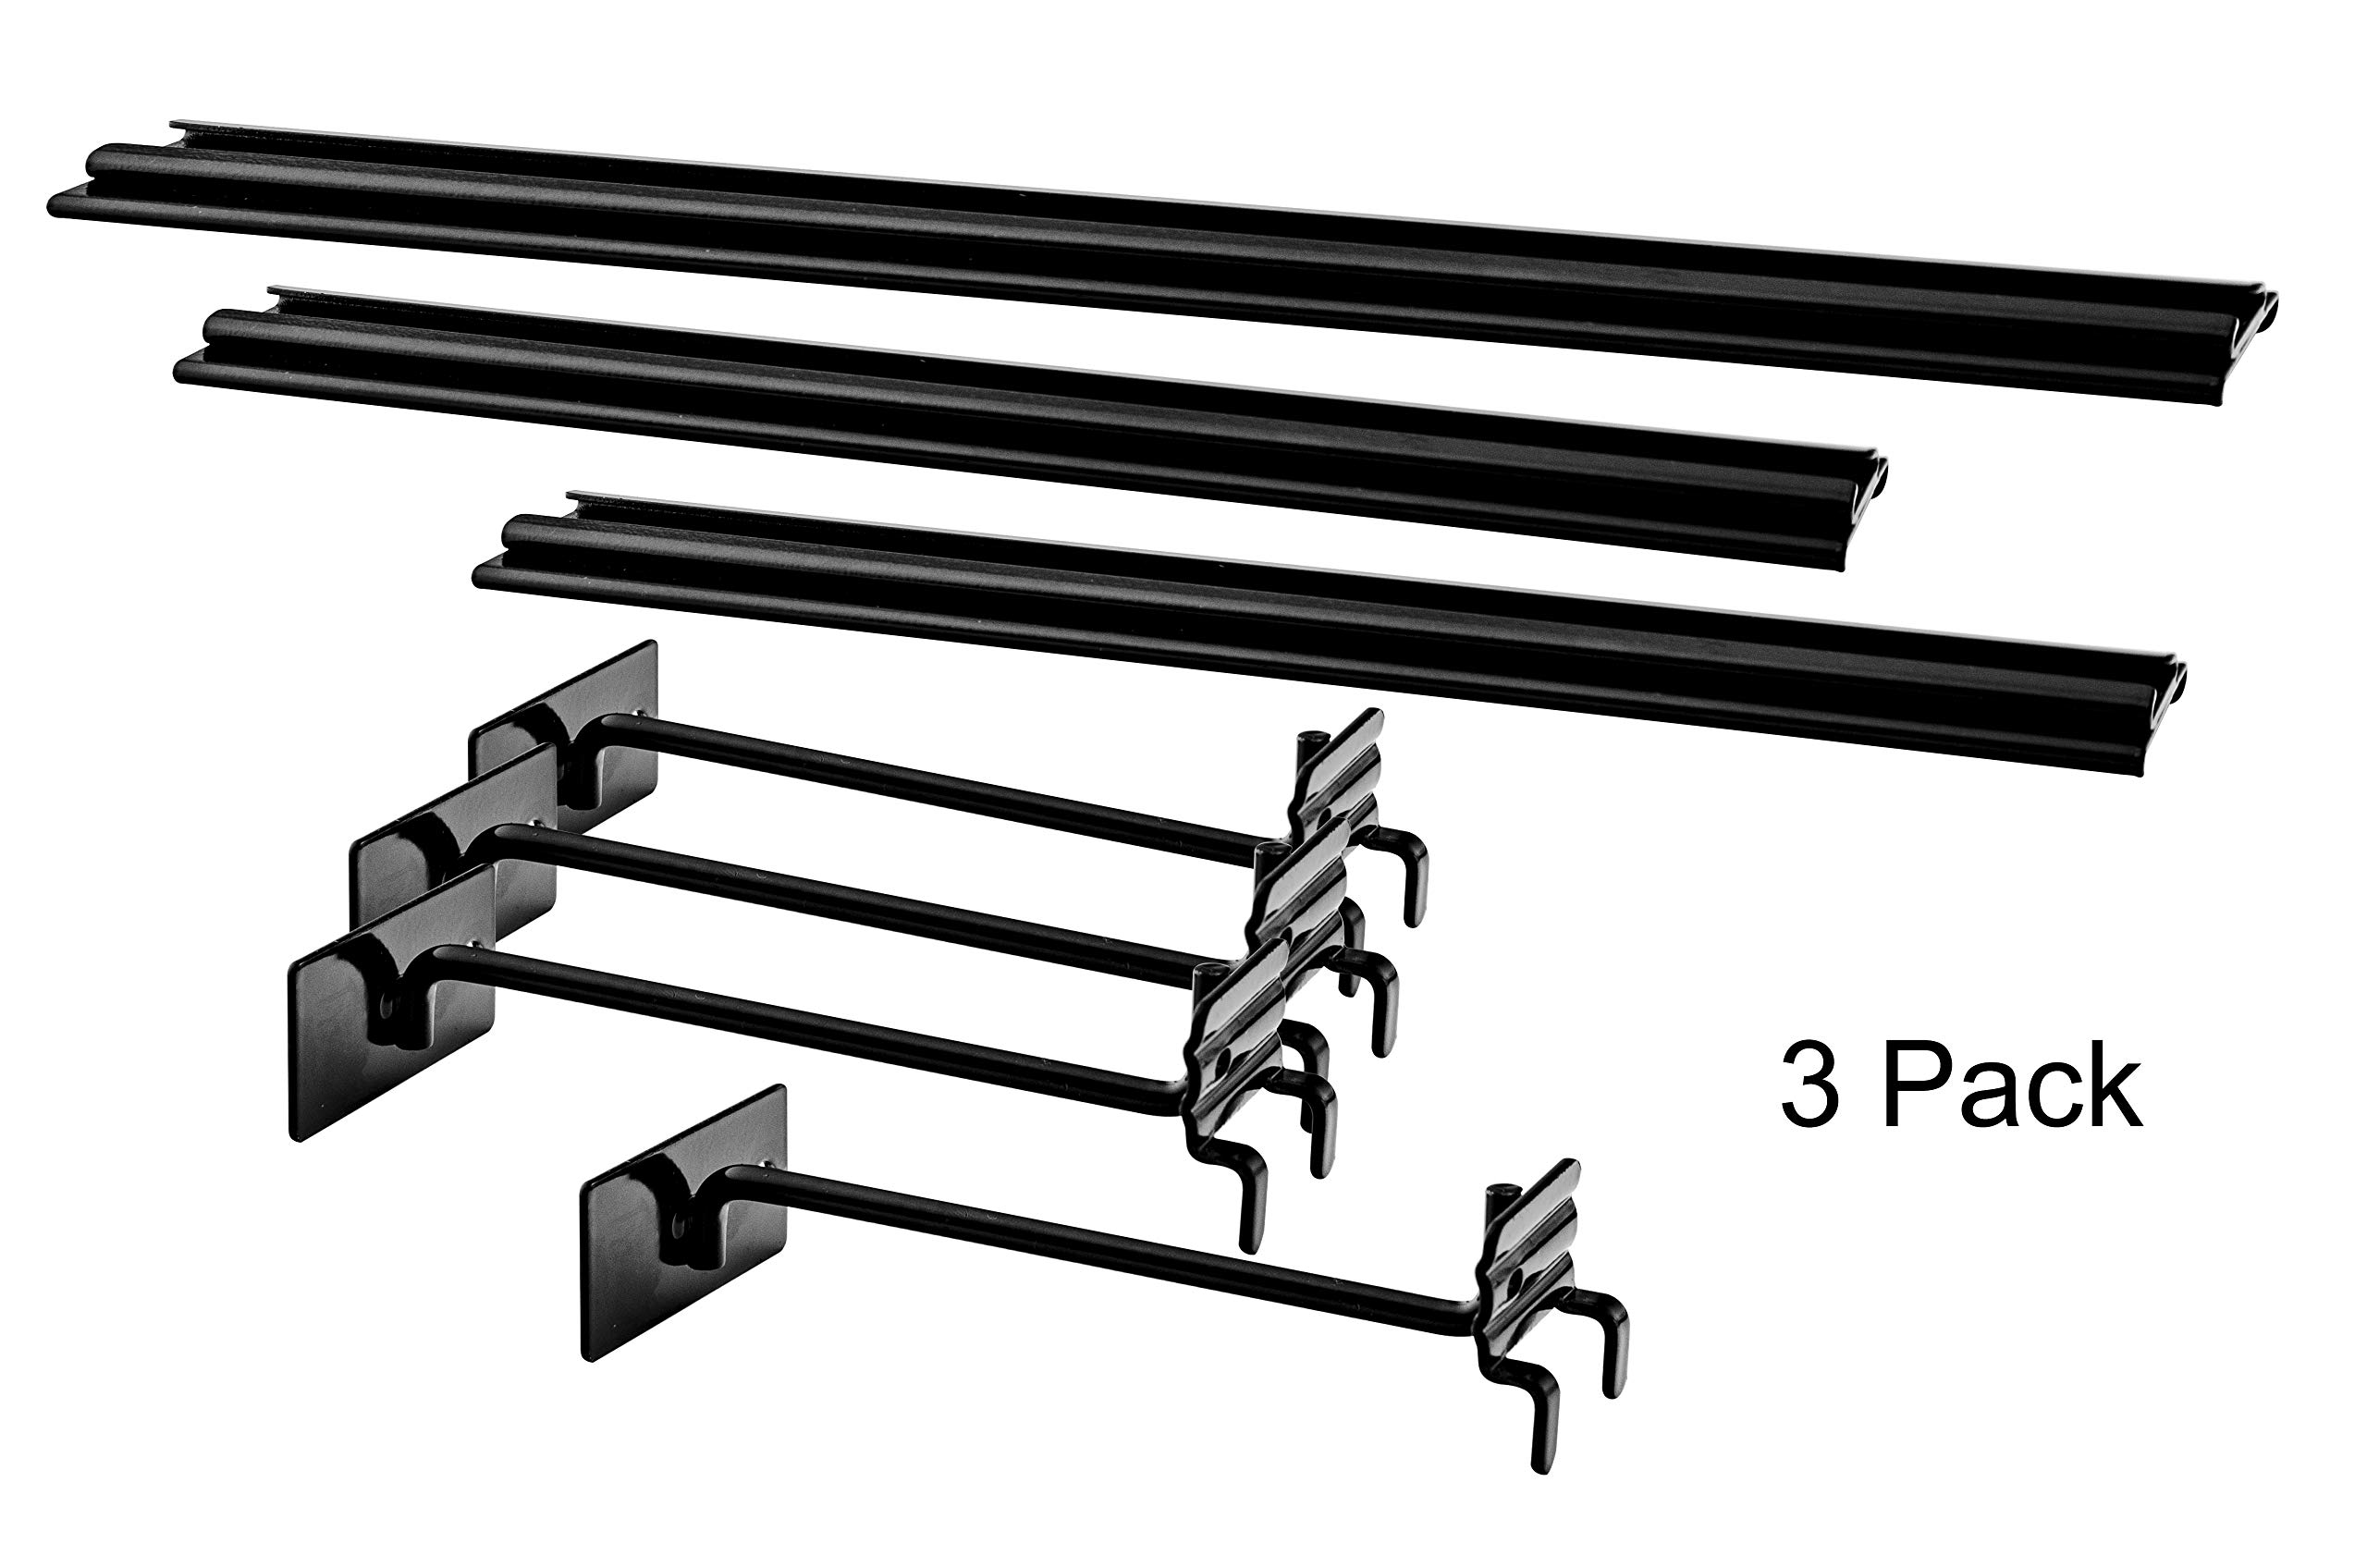 Marketing Holders Slatwall Pegboard Displays Extended Graphic Holder Sign Extender Pack of 3 Metal (2) 12'' and (1) 16''